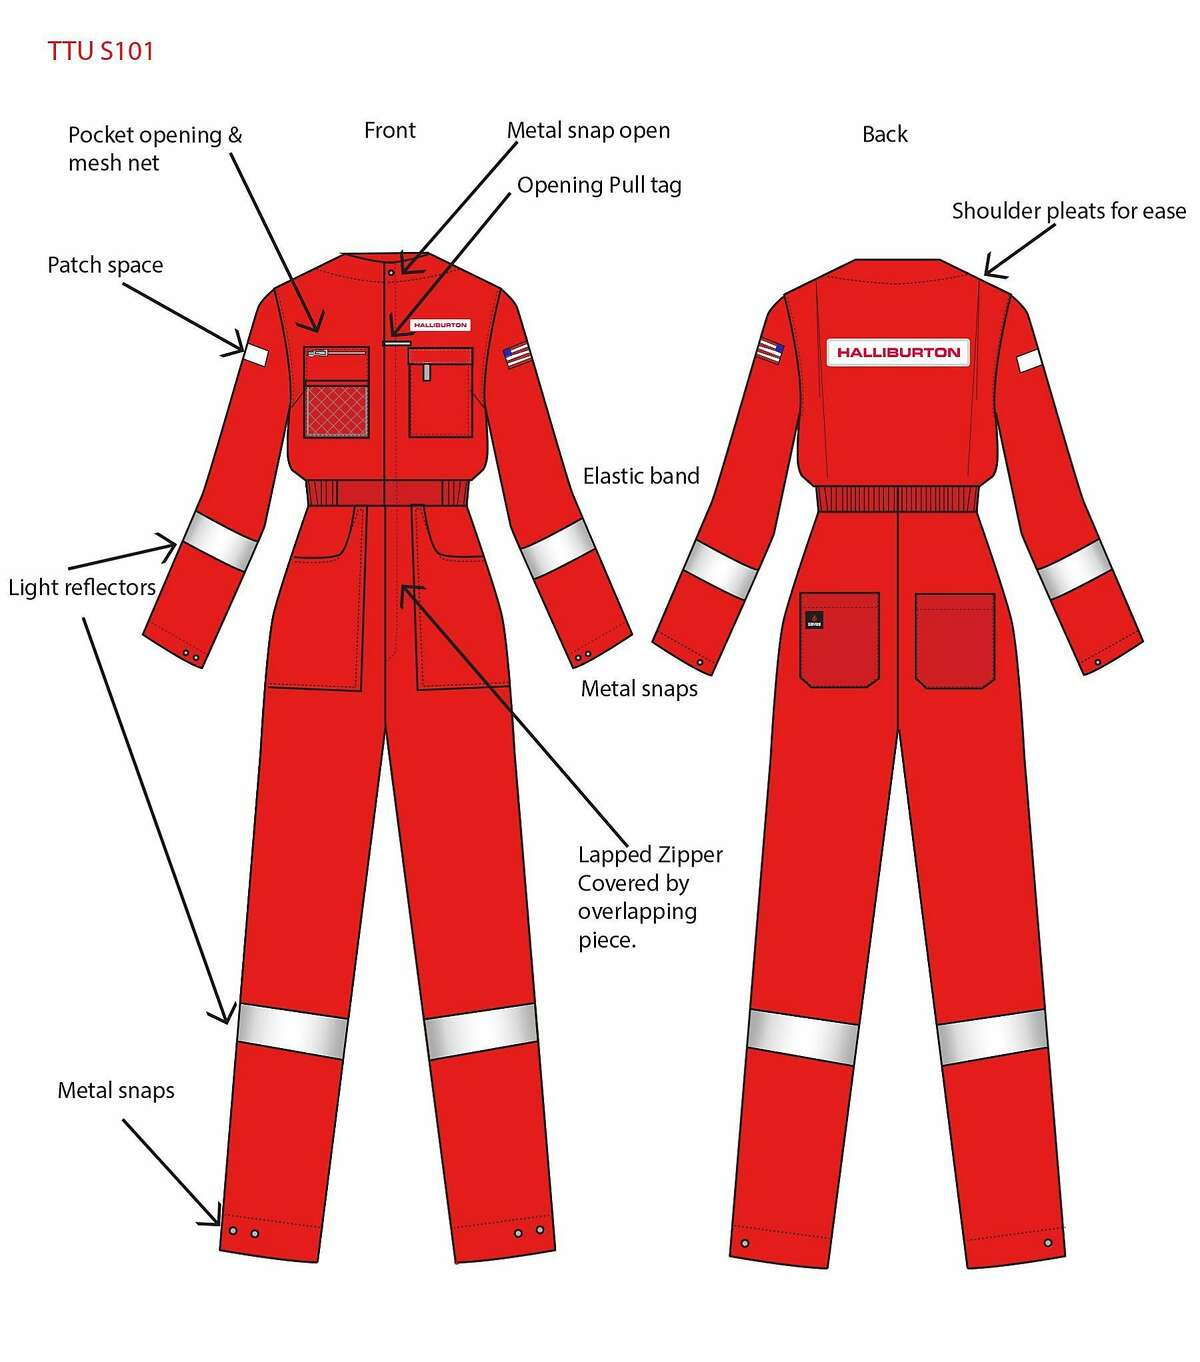 Sketch of a Halliburton coverall as being designed at Texas Tech University's Apparel and Manufacturing Design Department.